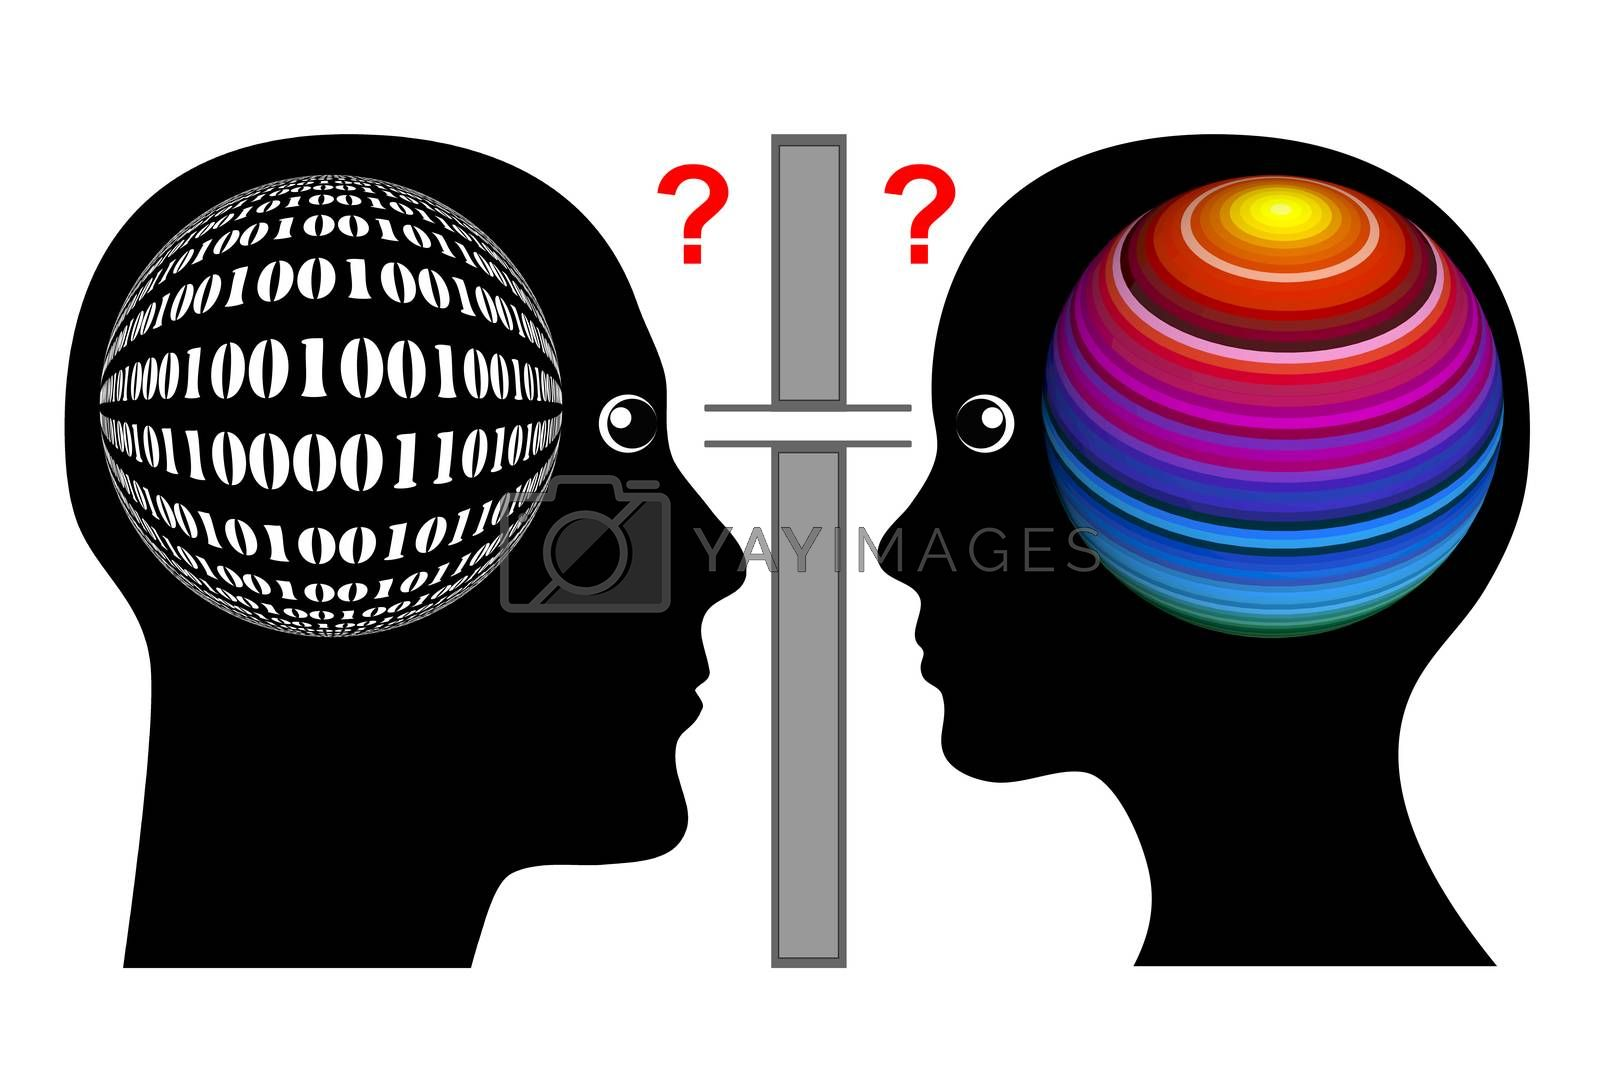 Man and woman seam to have different brain hemispheres which is leading to misunderstanding